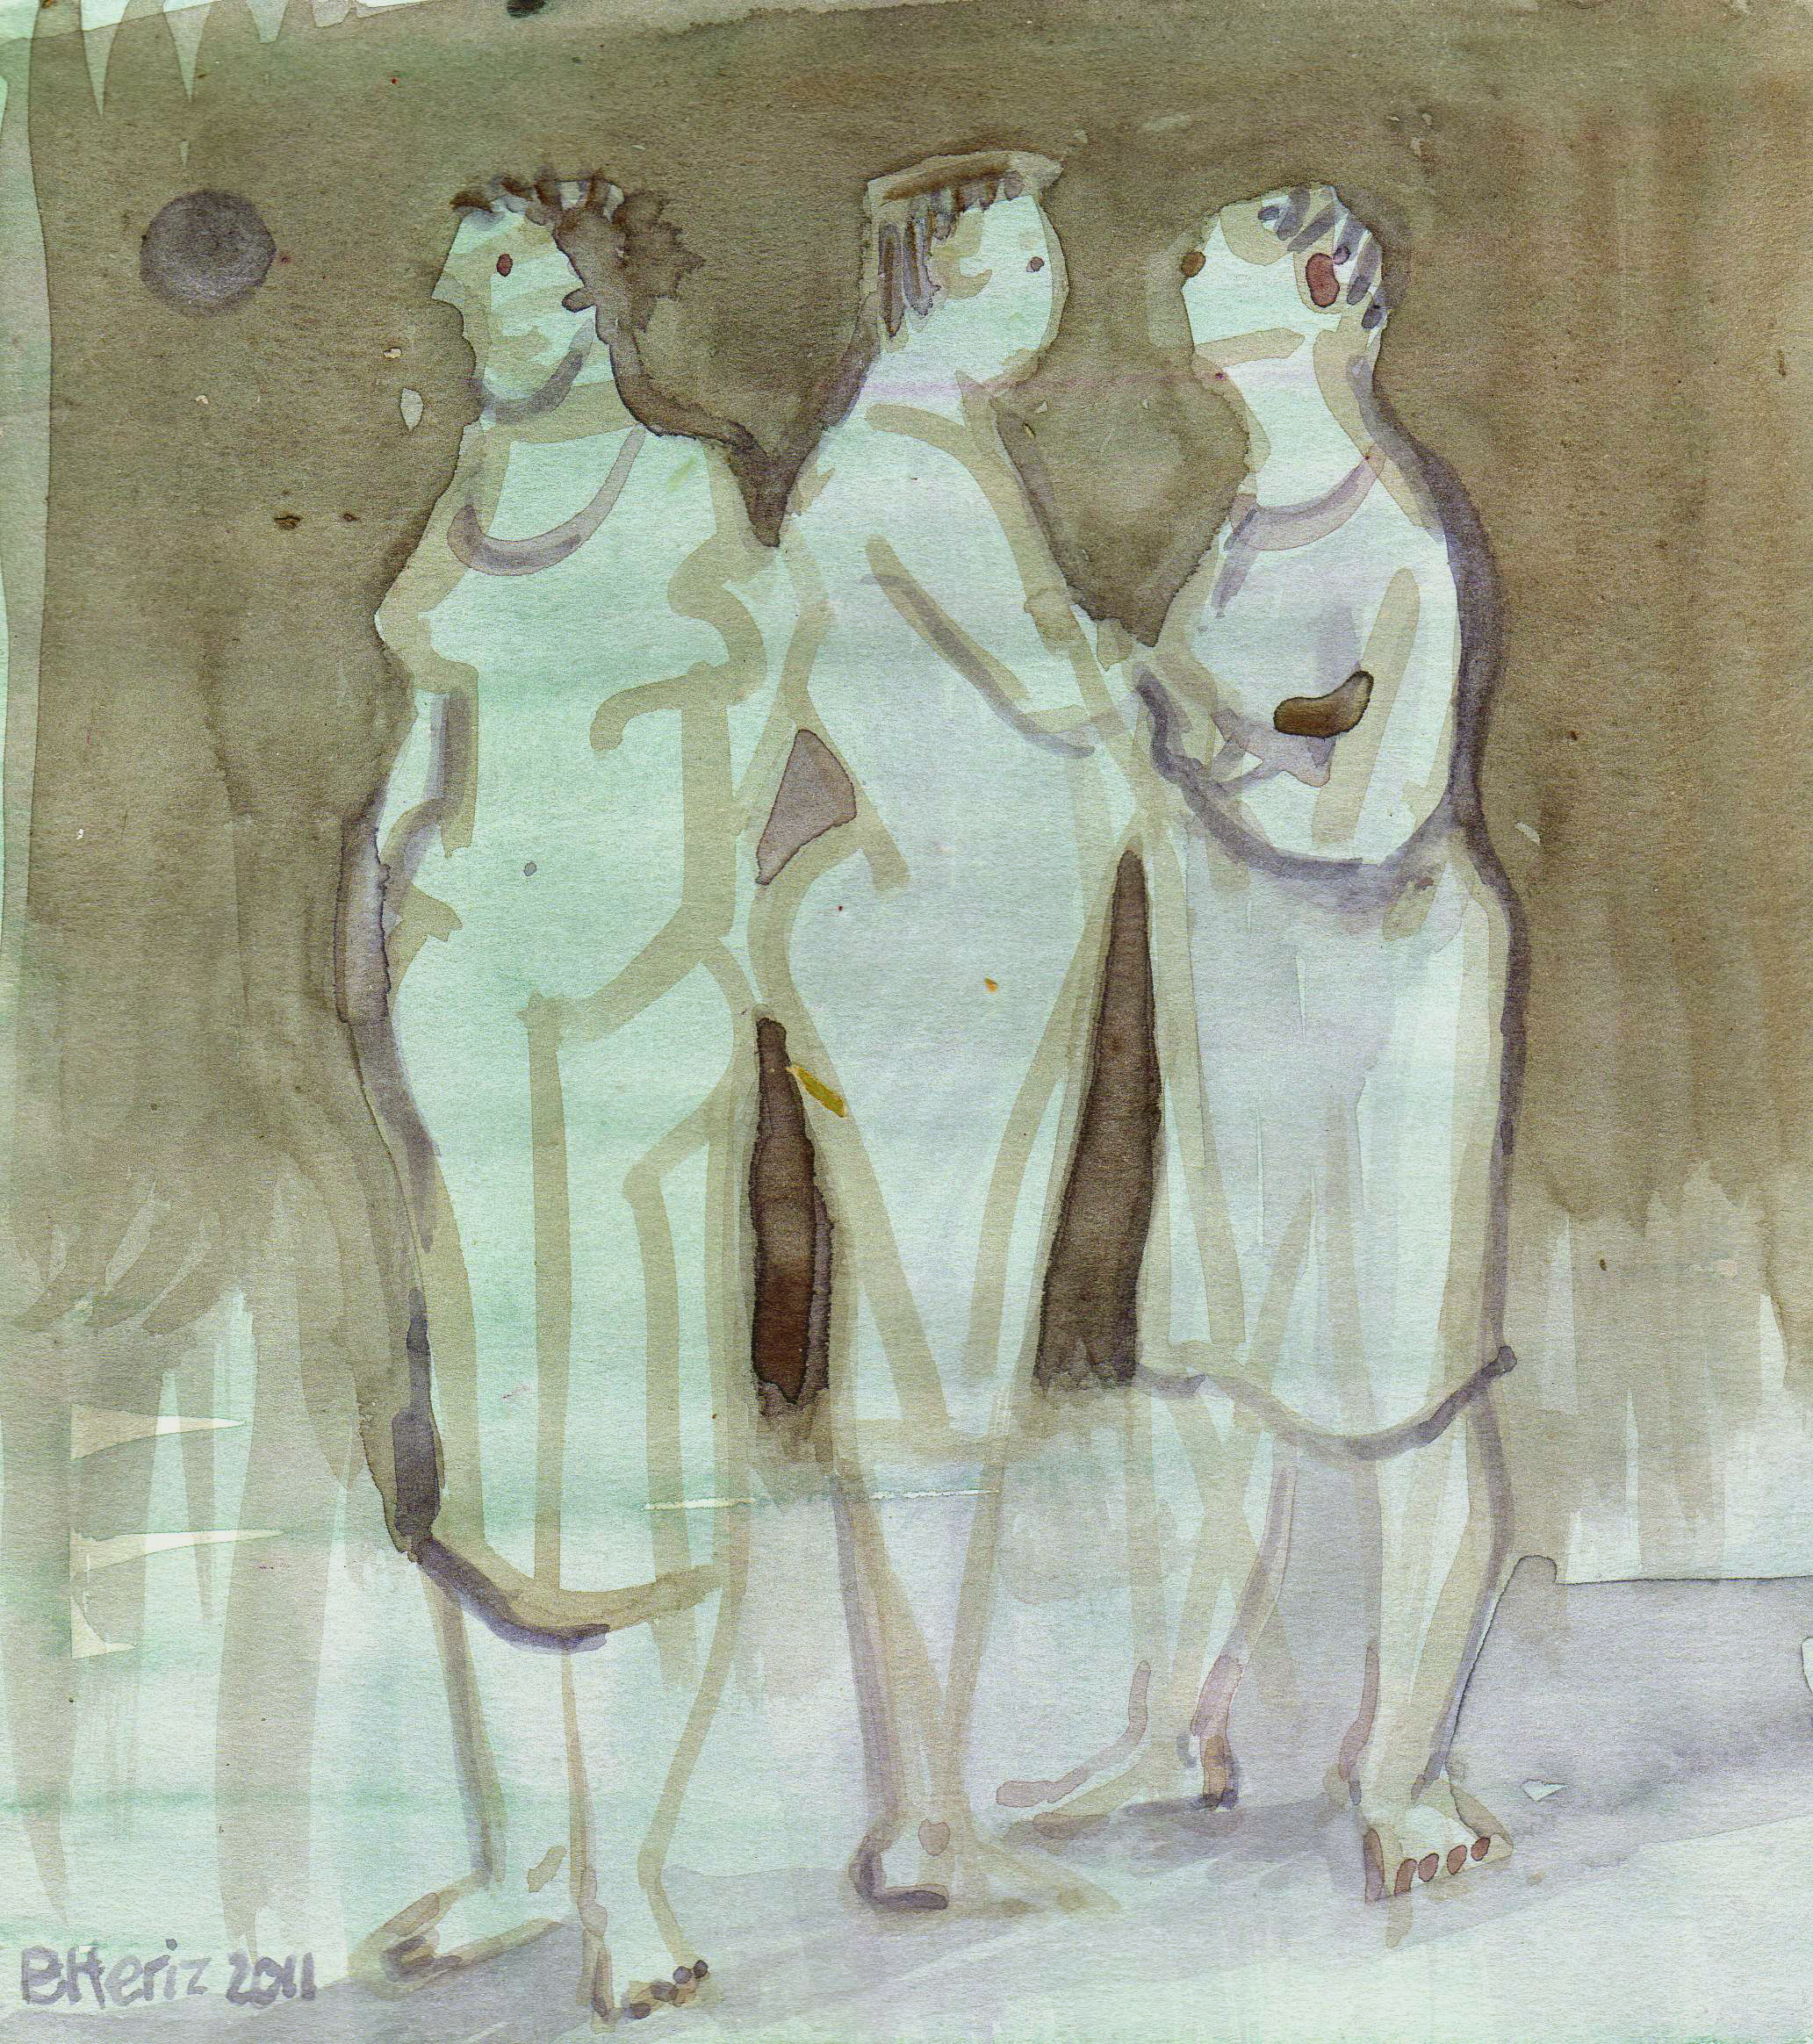 Questions, watercolour, 2011